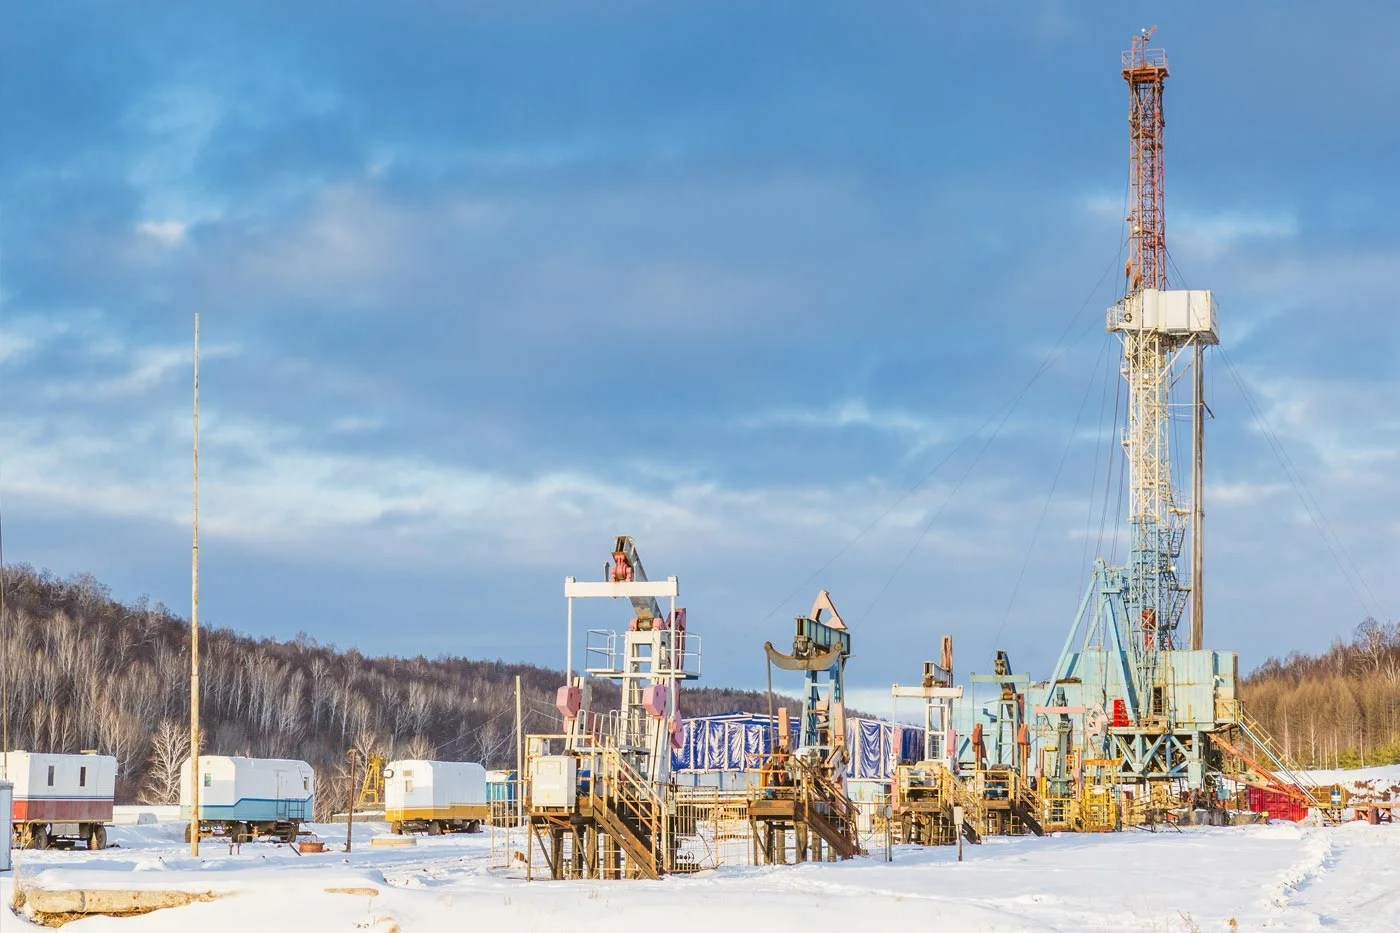 SCADA Cyber Security for an Industry 4.0 Oil and Gas Application